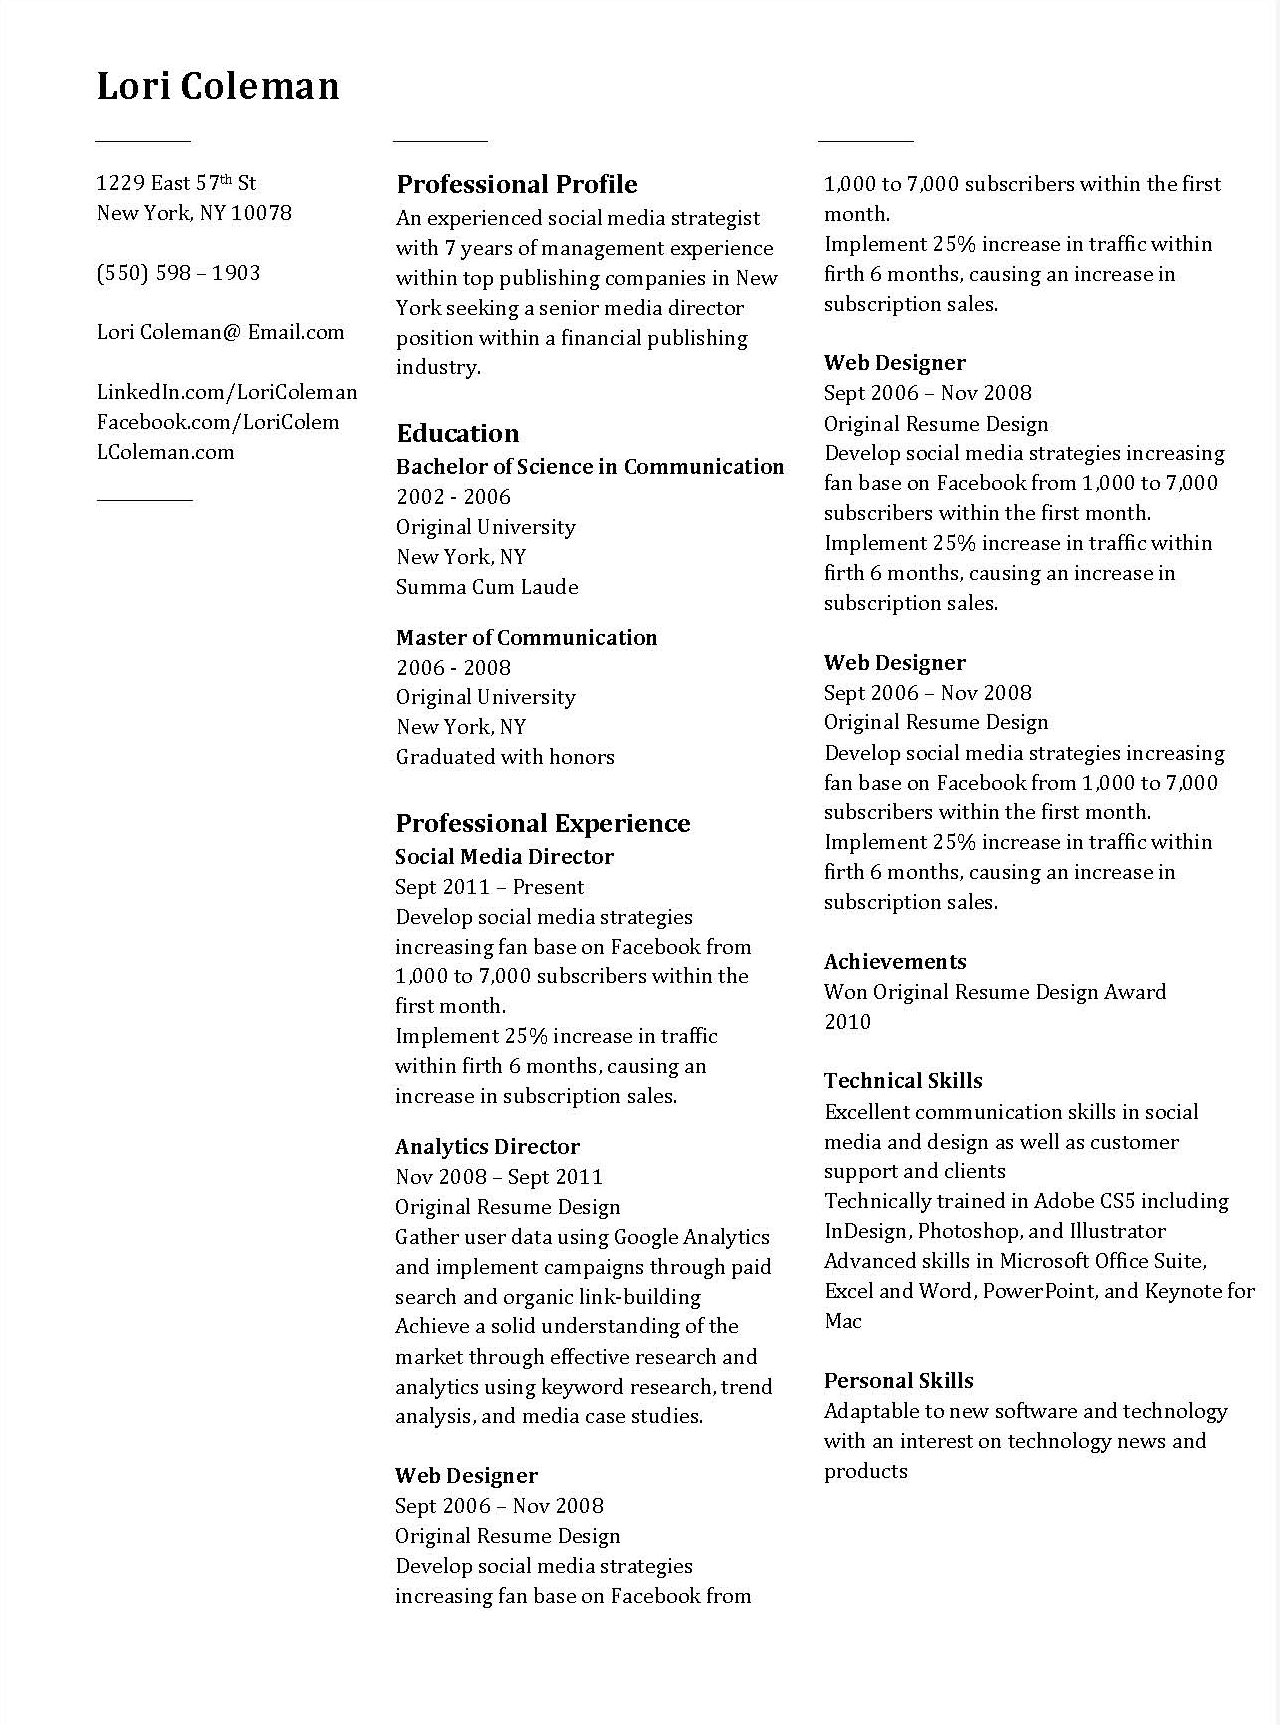 Resume help in microsoft word